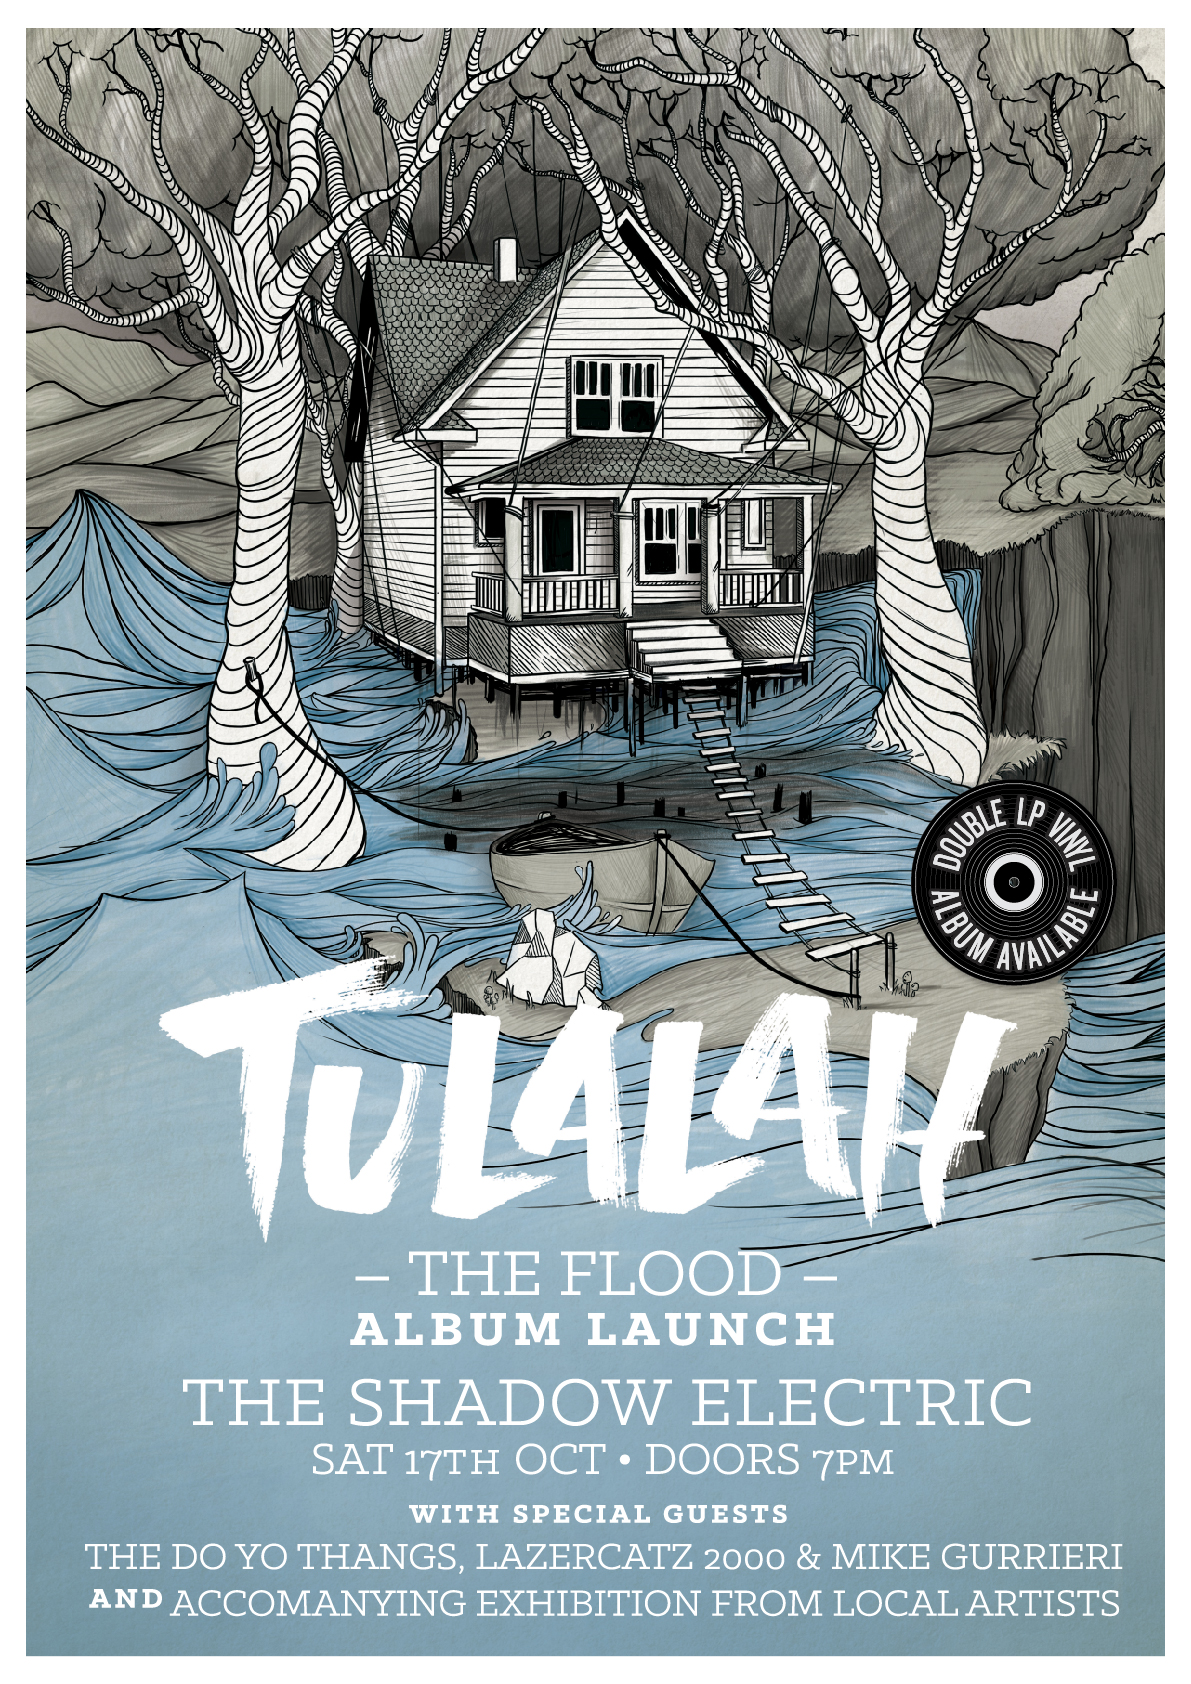 Tulalah 'The Flood' Album Launch Poster